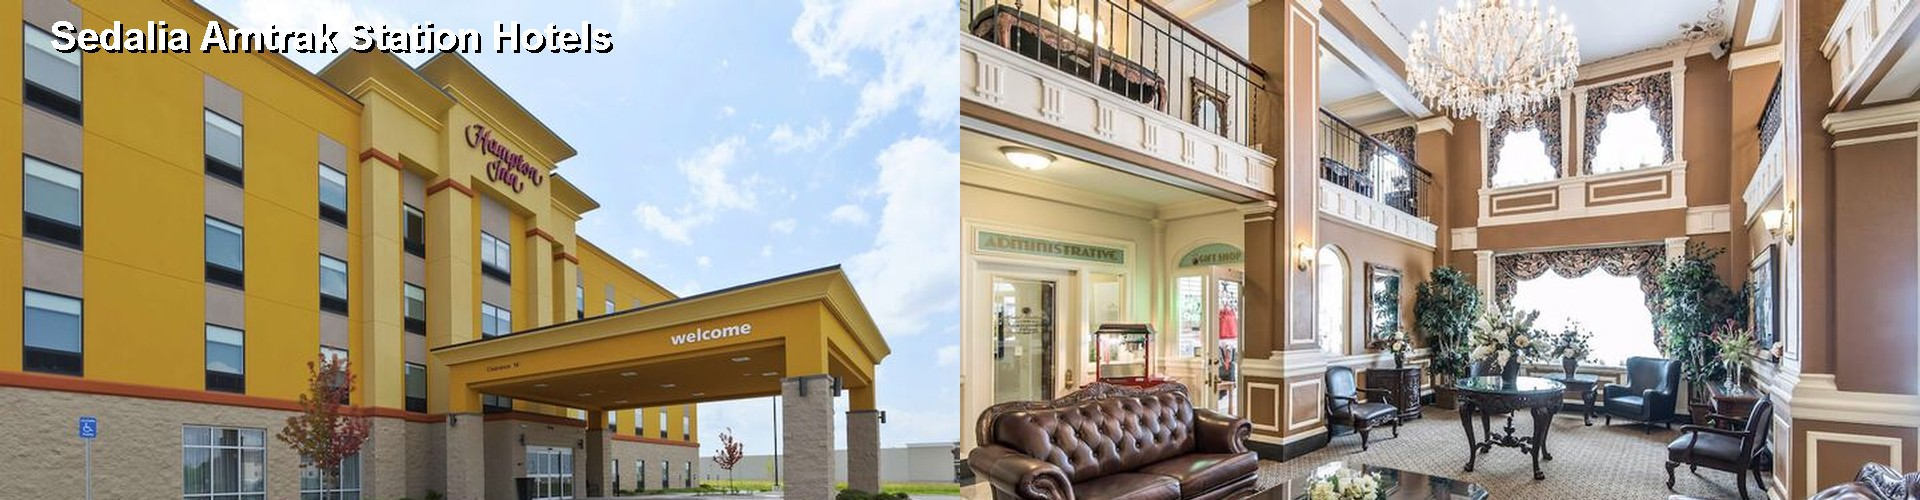 5 Best Hotels near Sedalia Amtrak Station